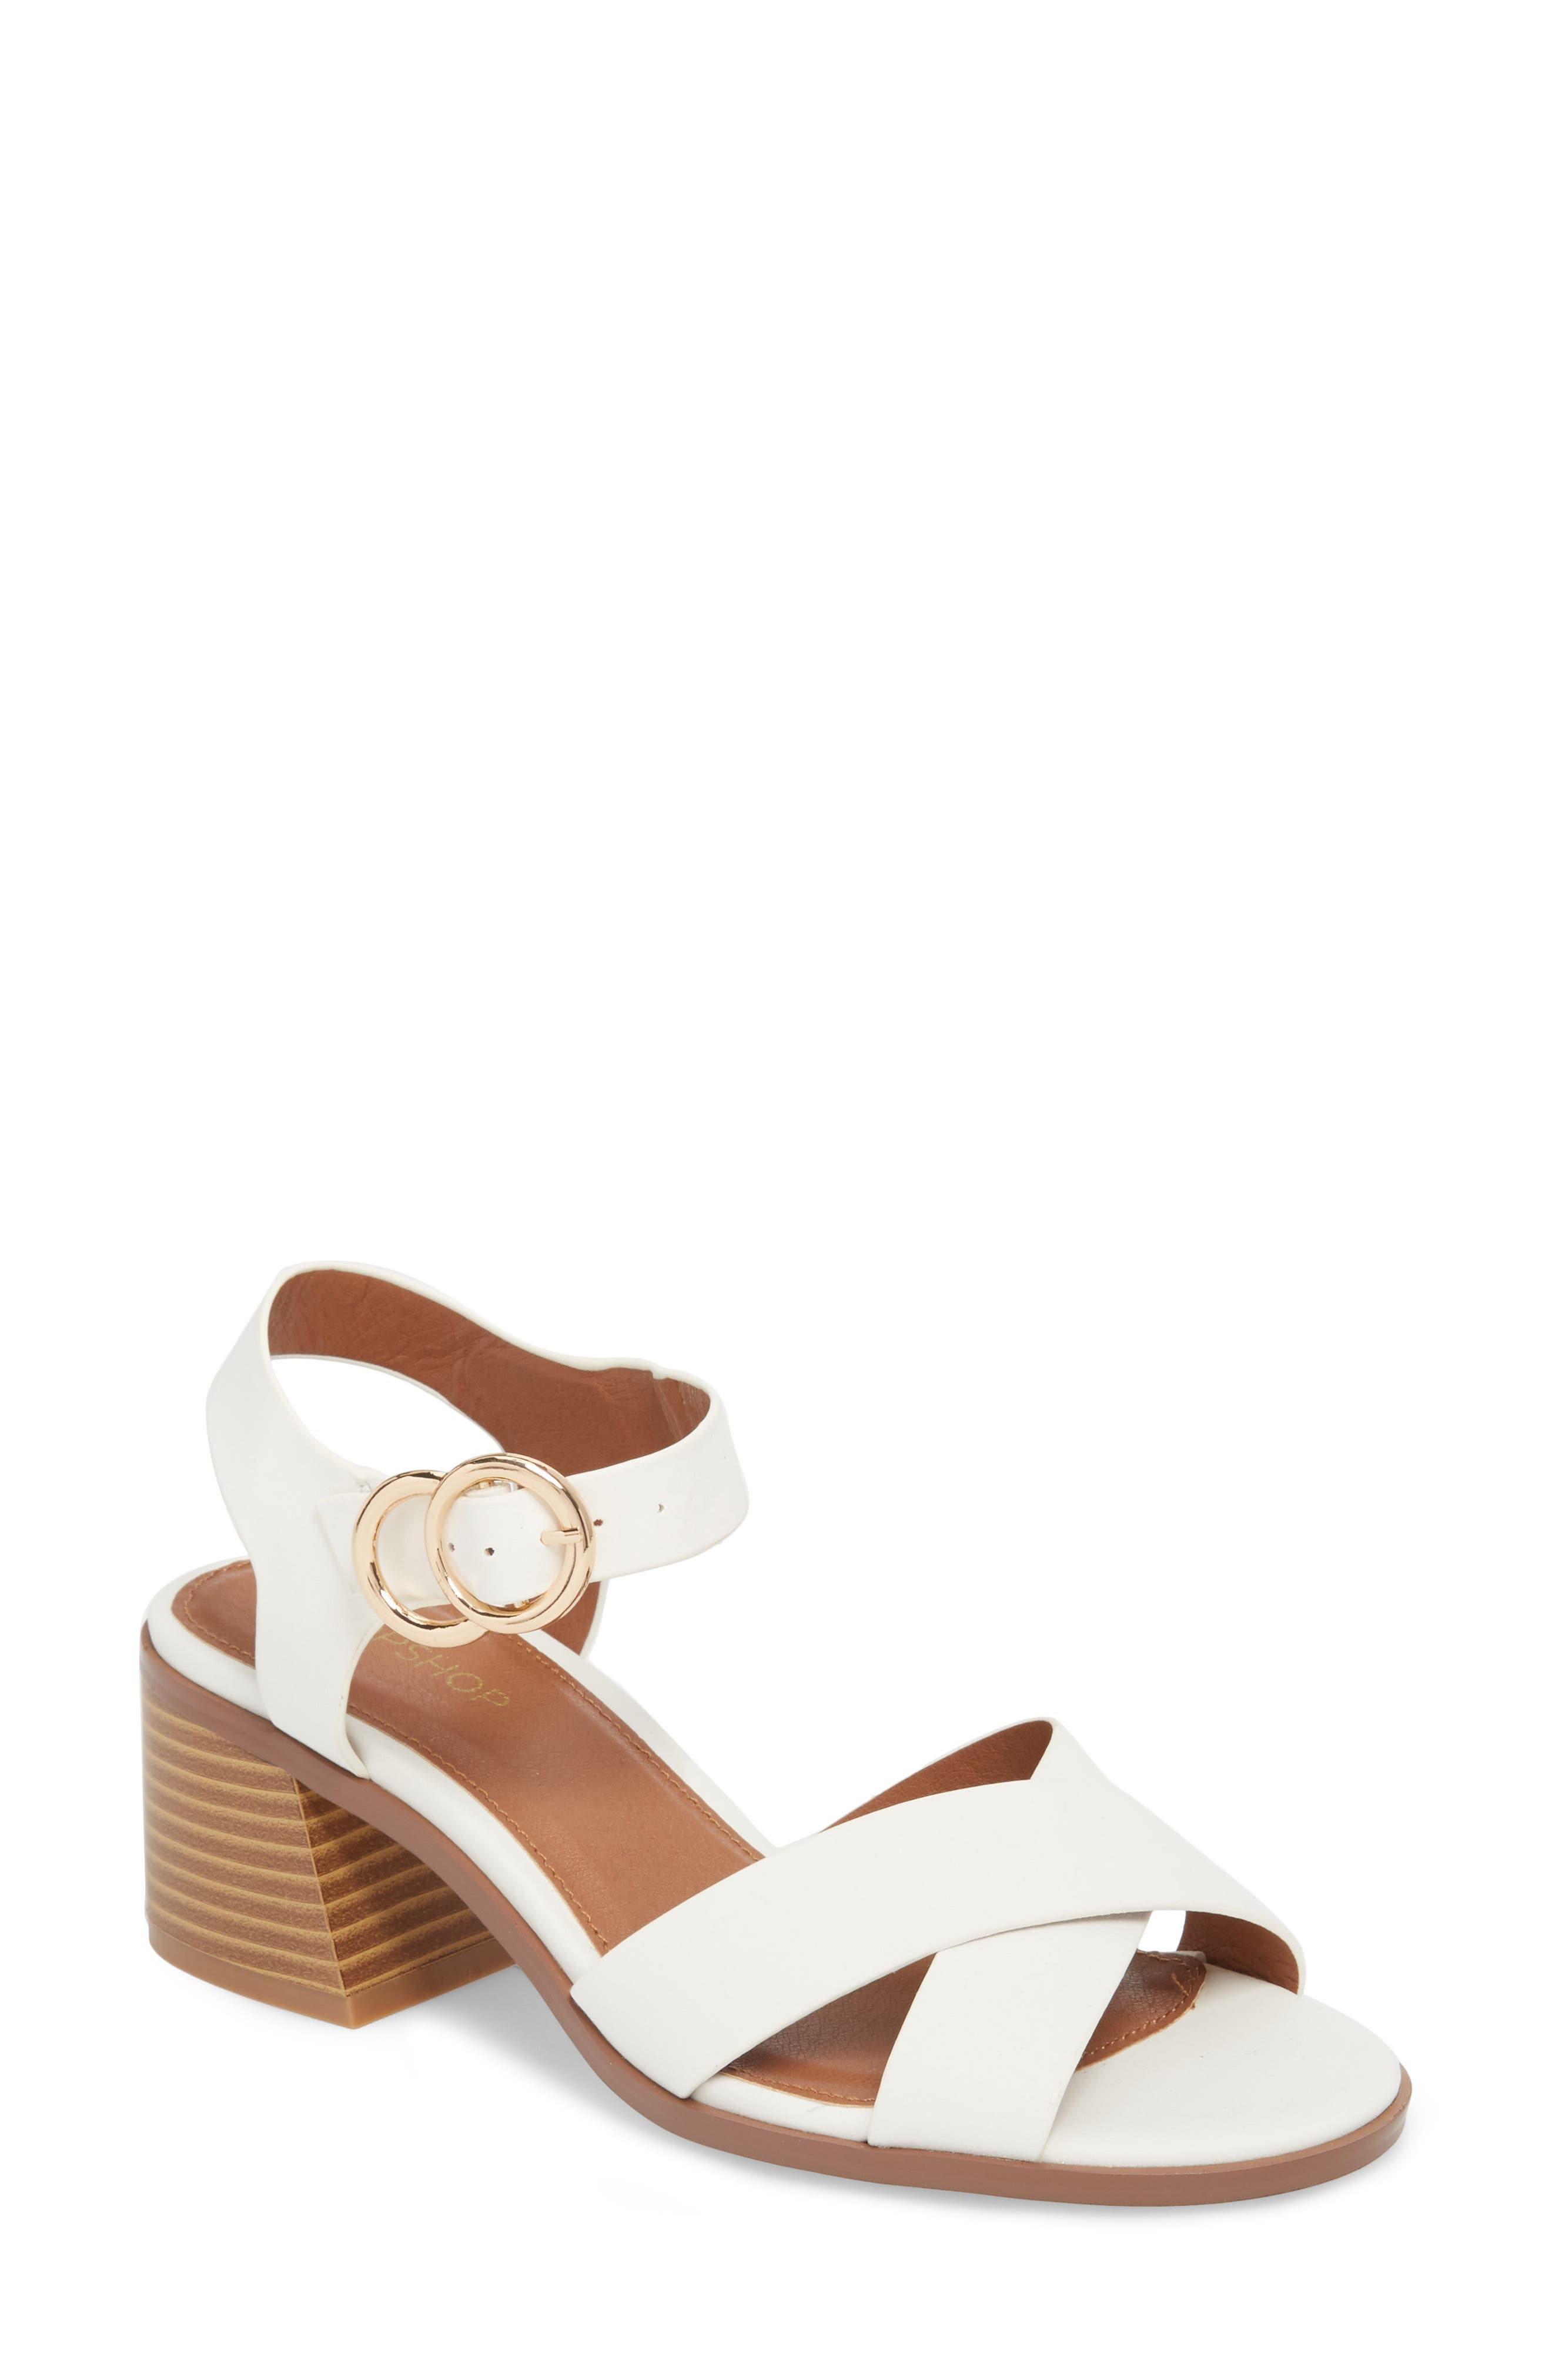 Dee Dee Block Heel Sandal,                         Main,                         color, White Multi